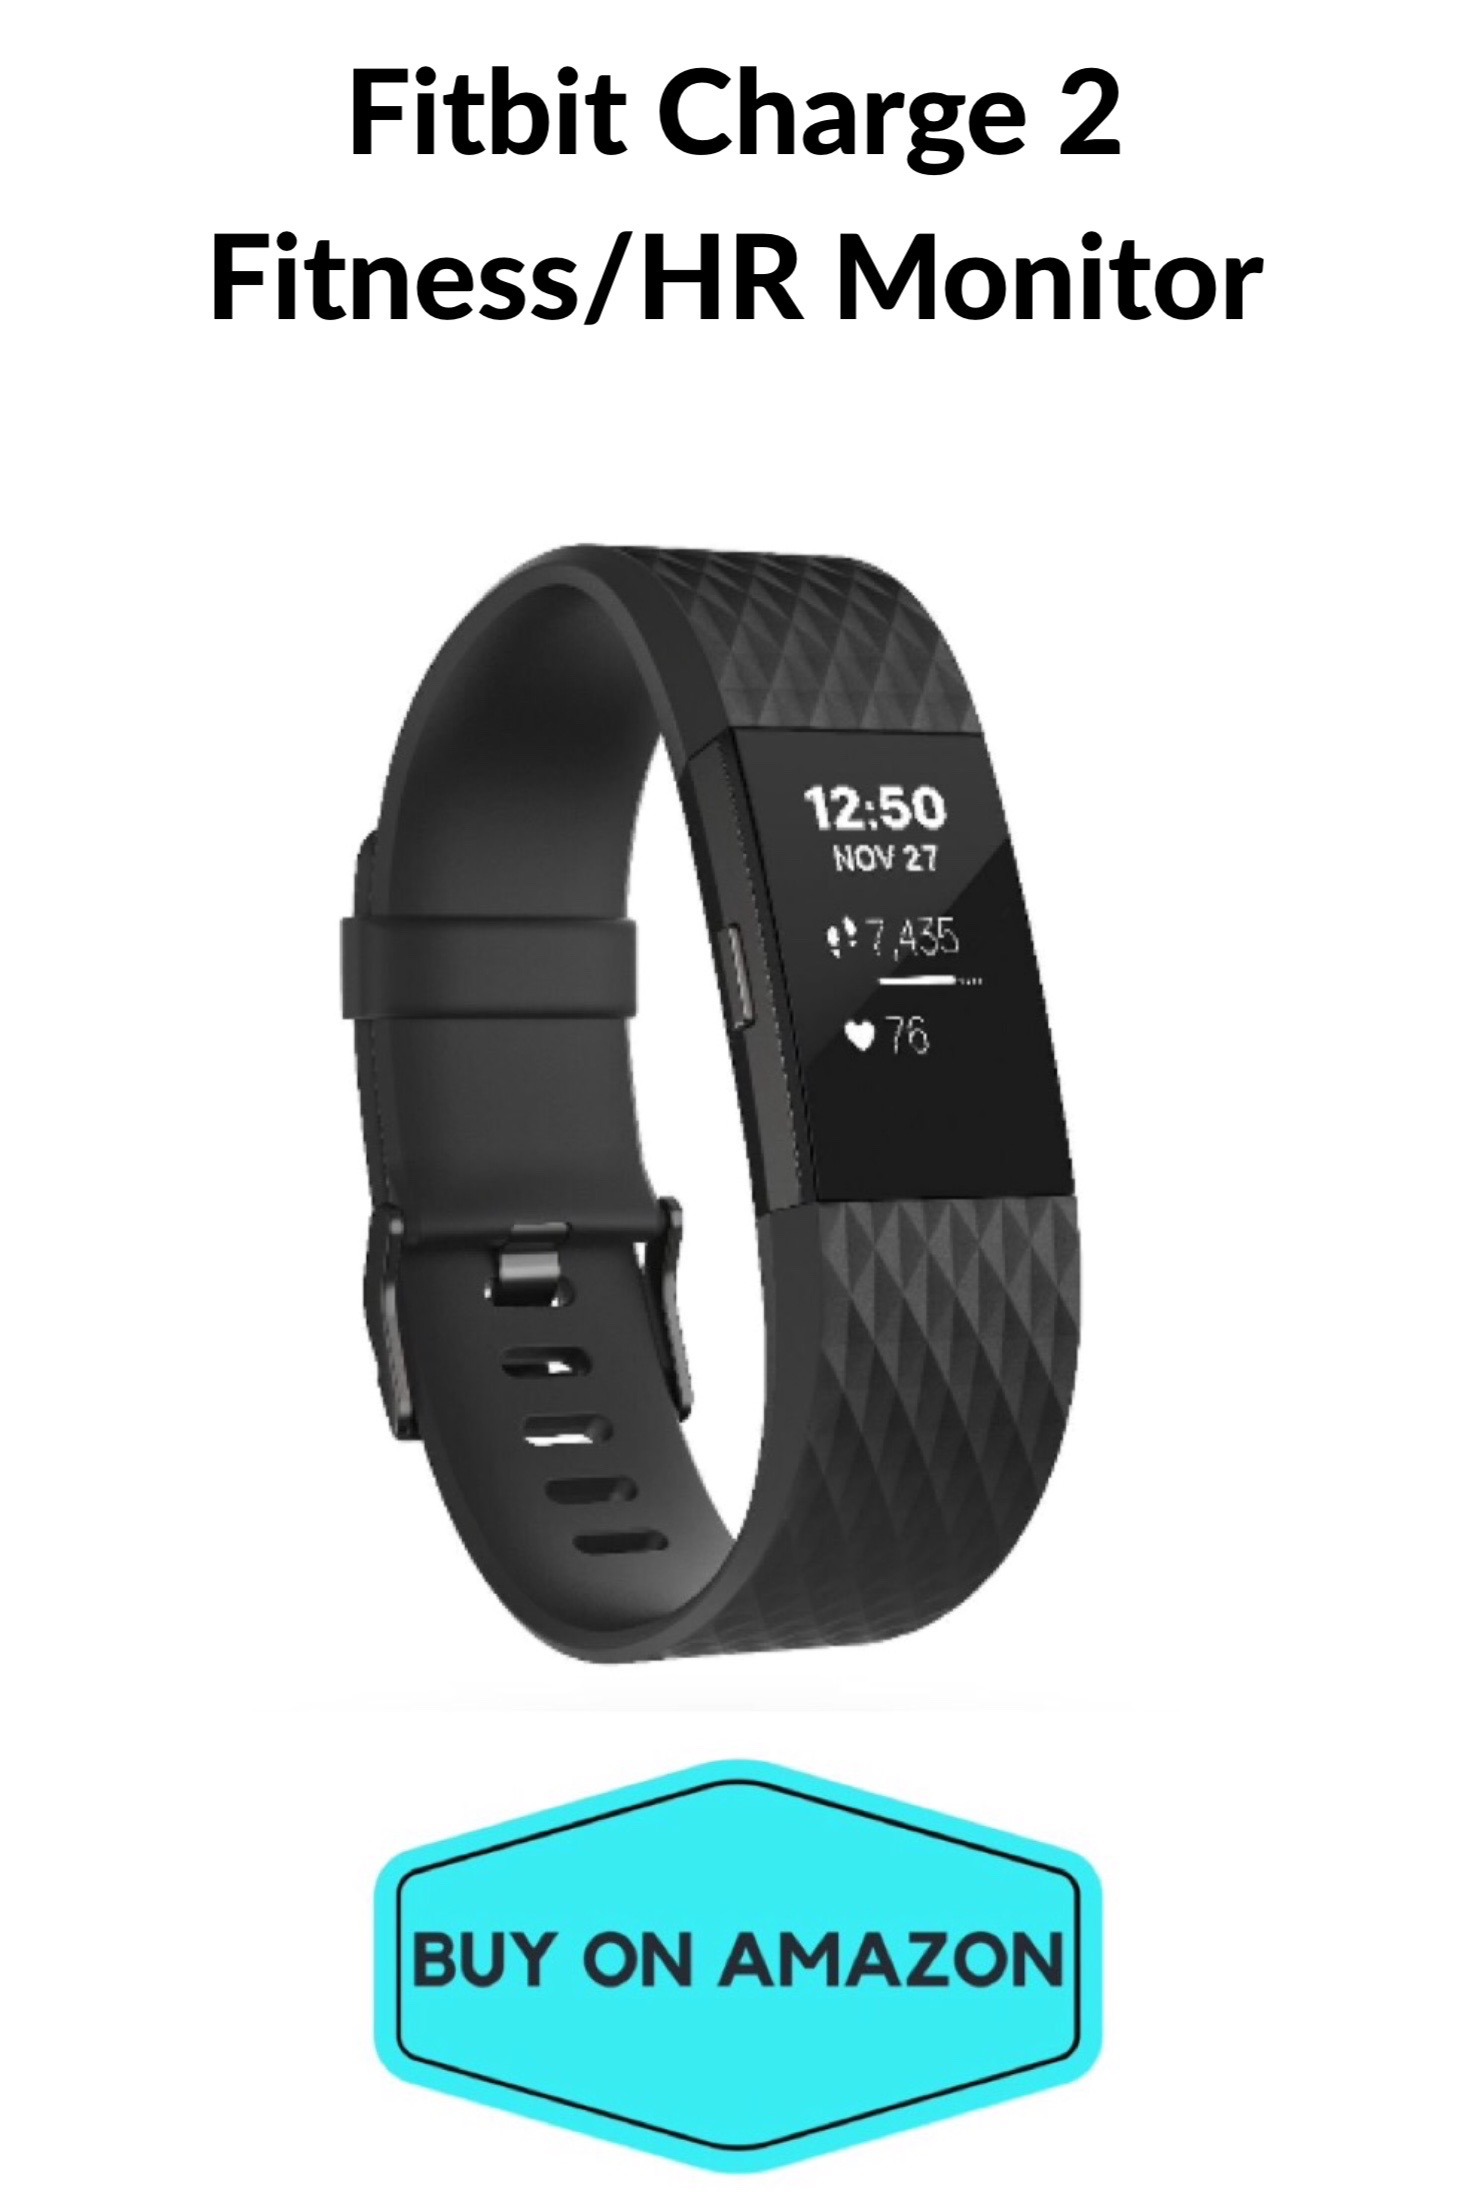 Fitbit Charge 2 HR Monitor